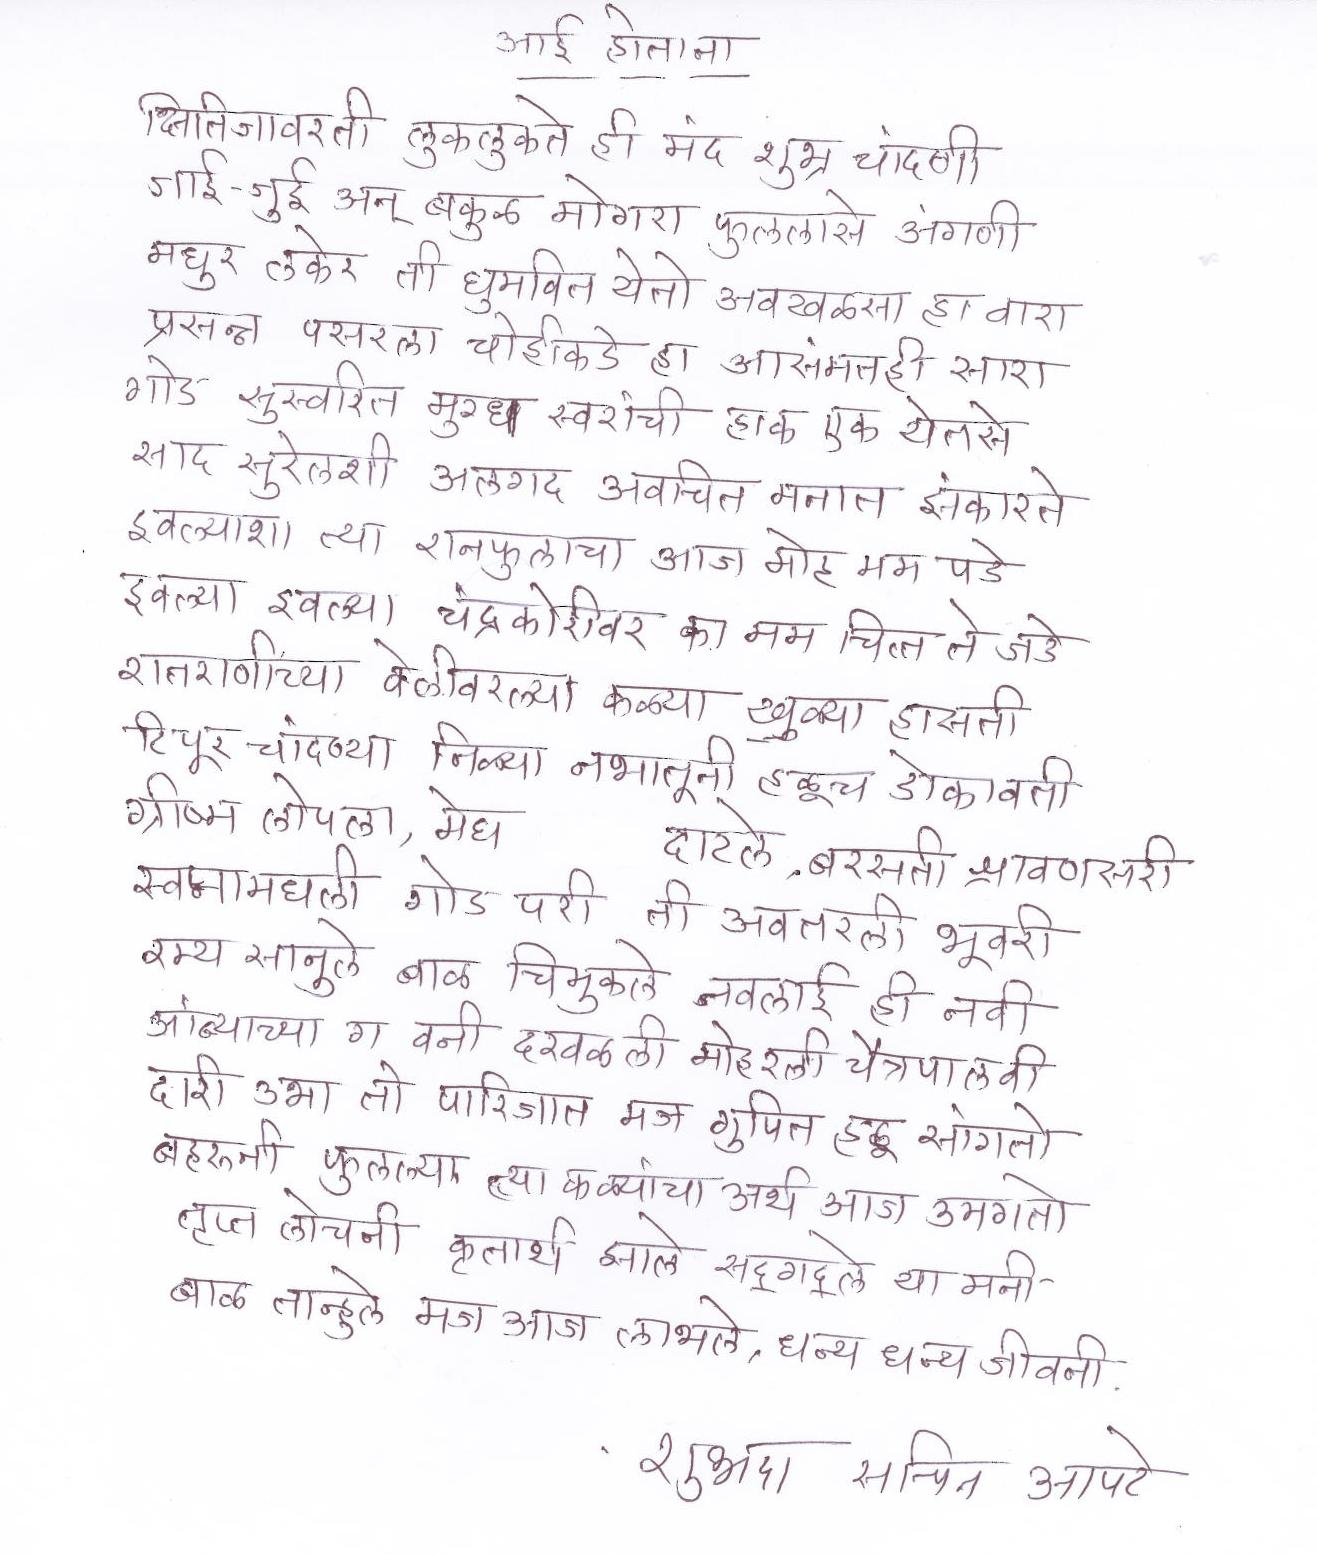 essay of mango tree in marathi